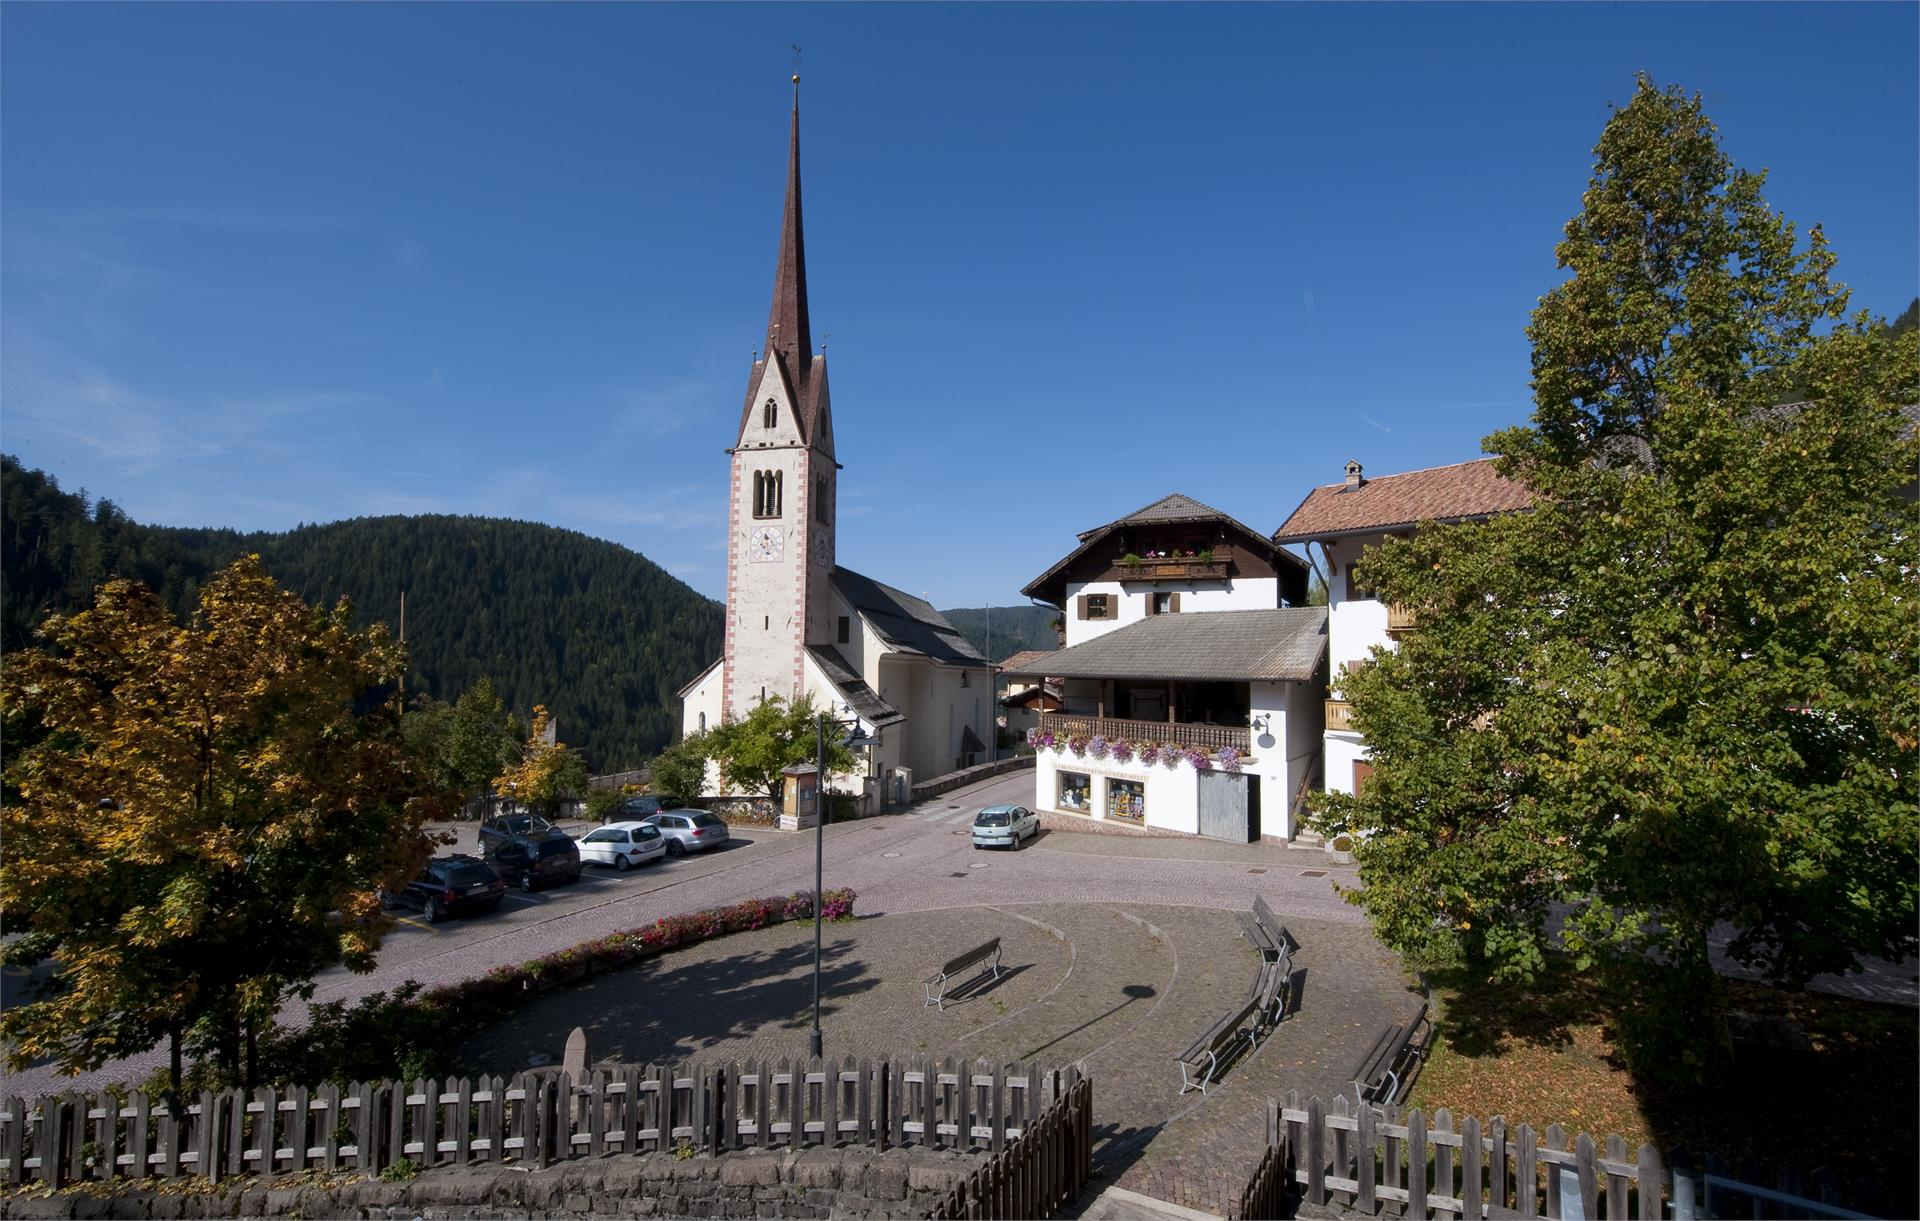 The St. Nicholas Parish Church in Ega